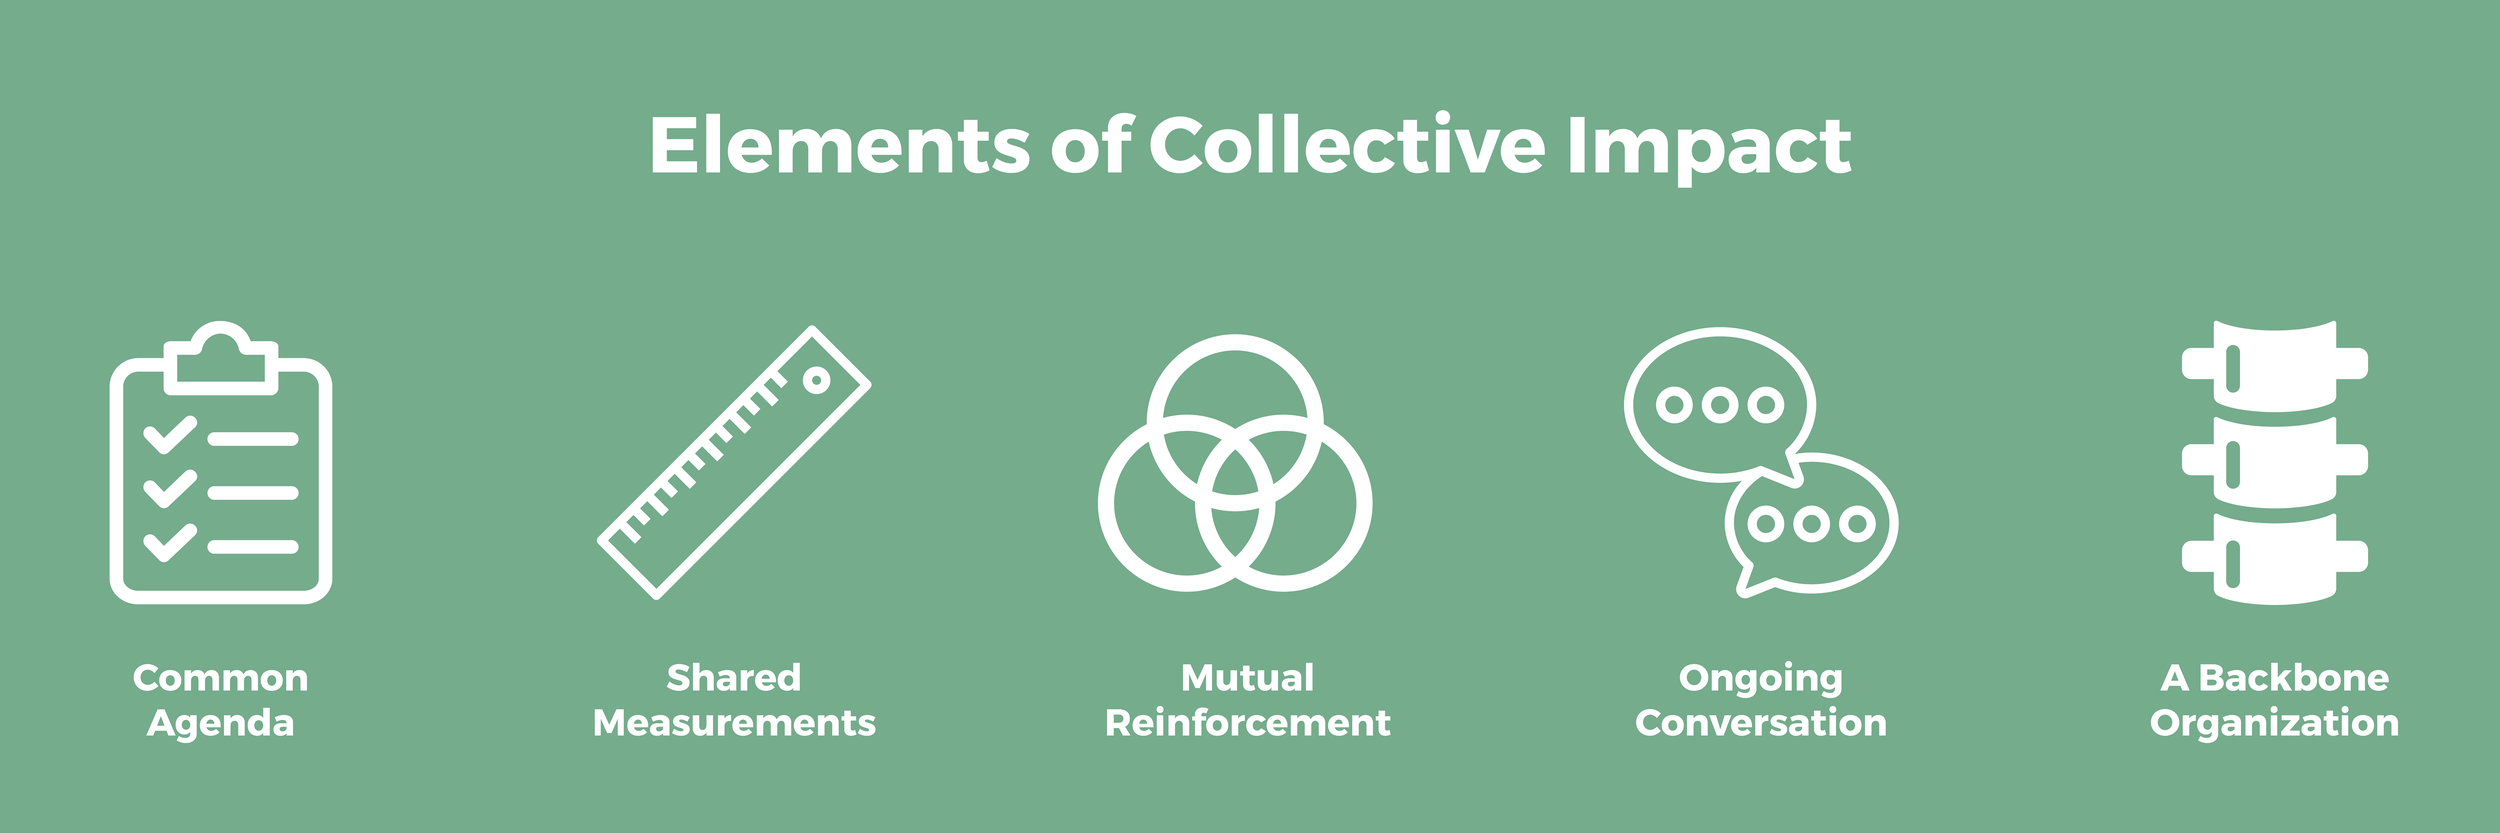 Elements of Collective Impact.png